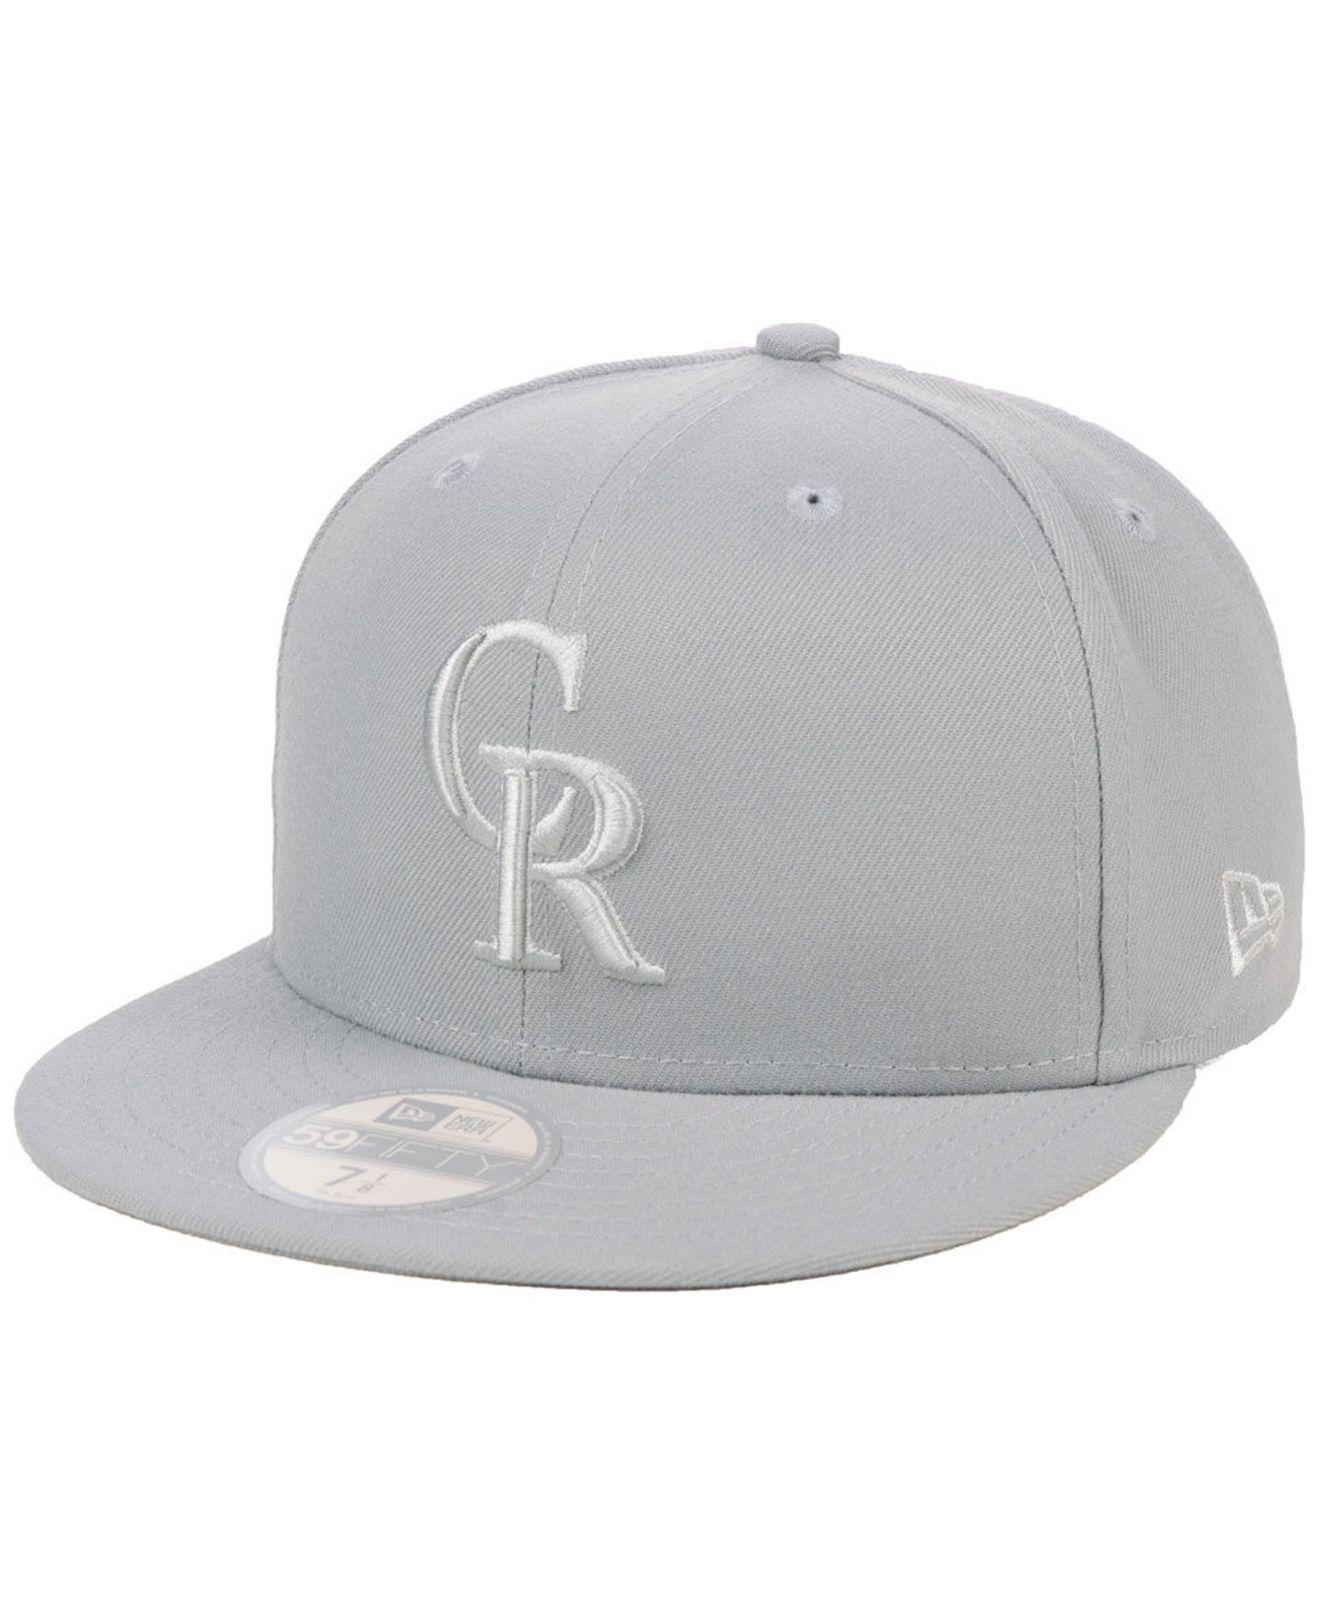 quality design e86e6 52c24 france new era colorado rockies fall prism pack 59fifty fitted cap 2a432  1ffe9  good ktz. mens gray colorado rockies fall prism pack 59fifty fitted  cap ...